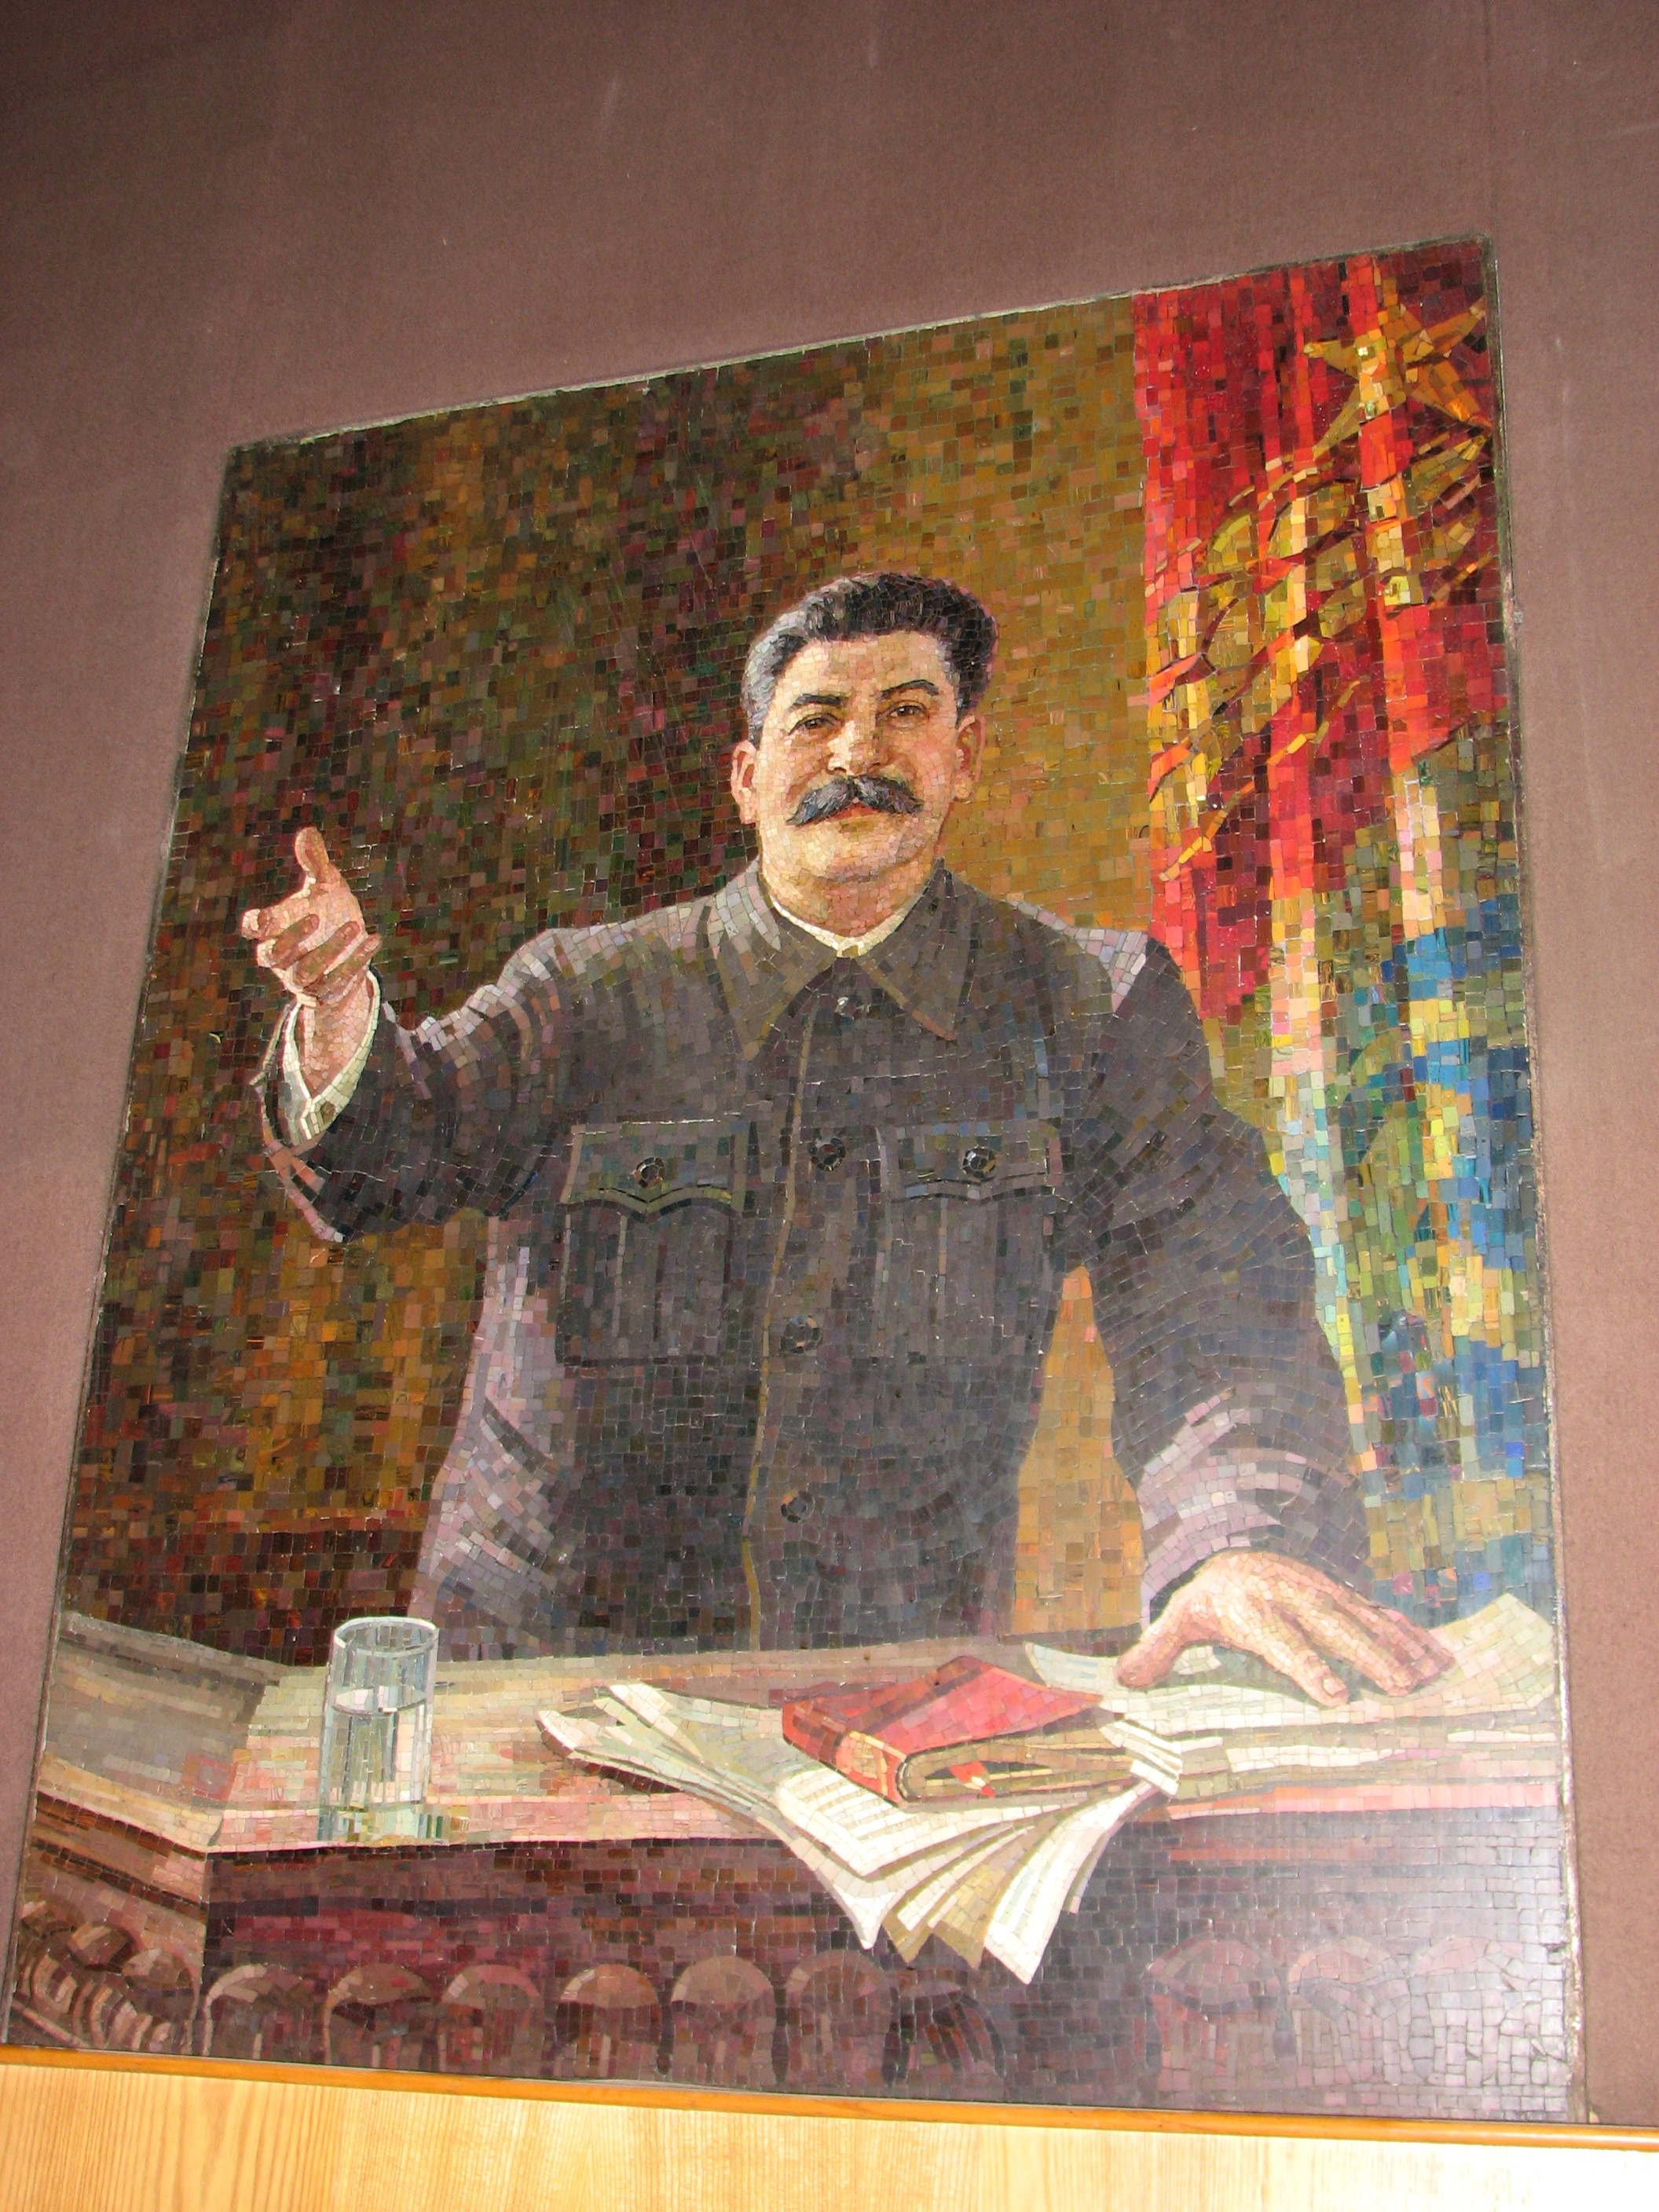 Mosaic of Stalin in the Josef Stalin Museum Gori - Georgia